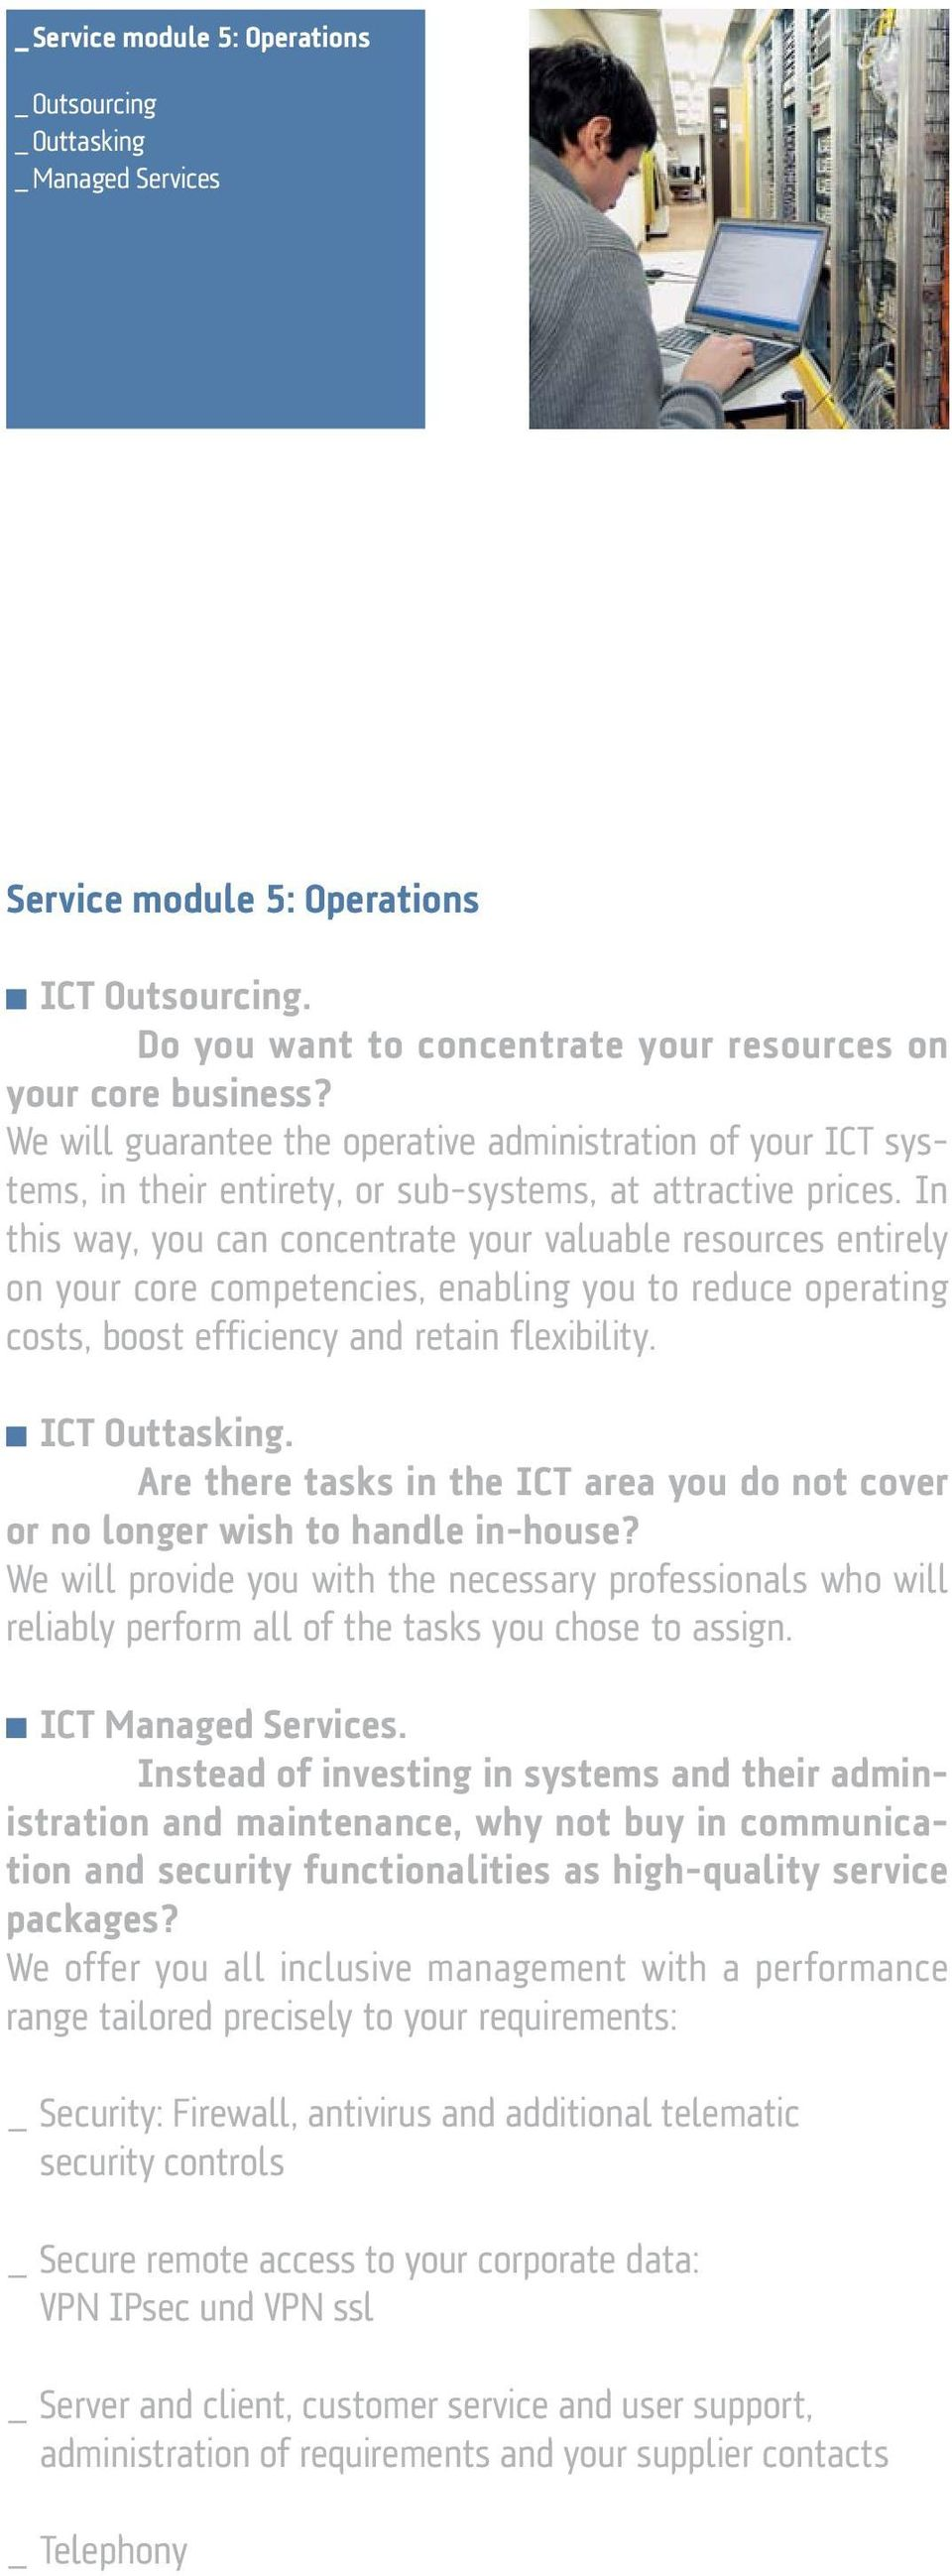 In this way, you can concentrate your valuable resources entirely on your core competencies, enabling you to reduce operating costs, boost efficiency and retain flexibility. ICT Outtasking.